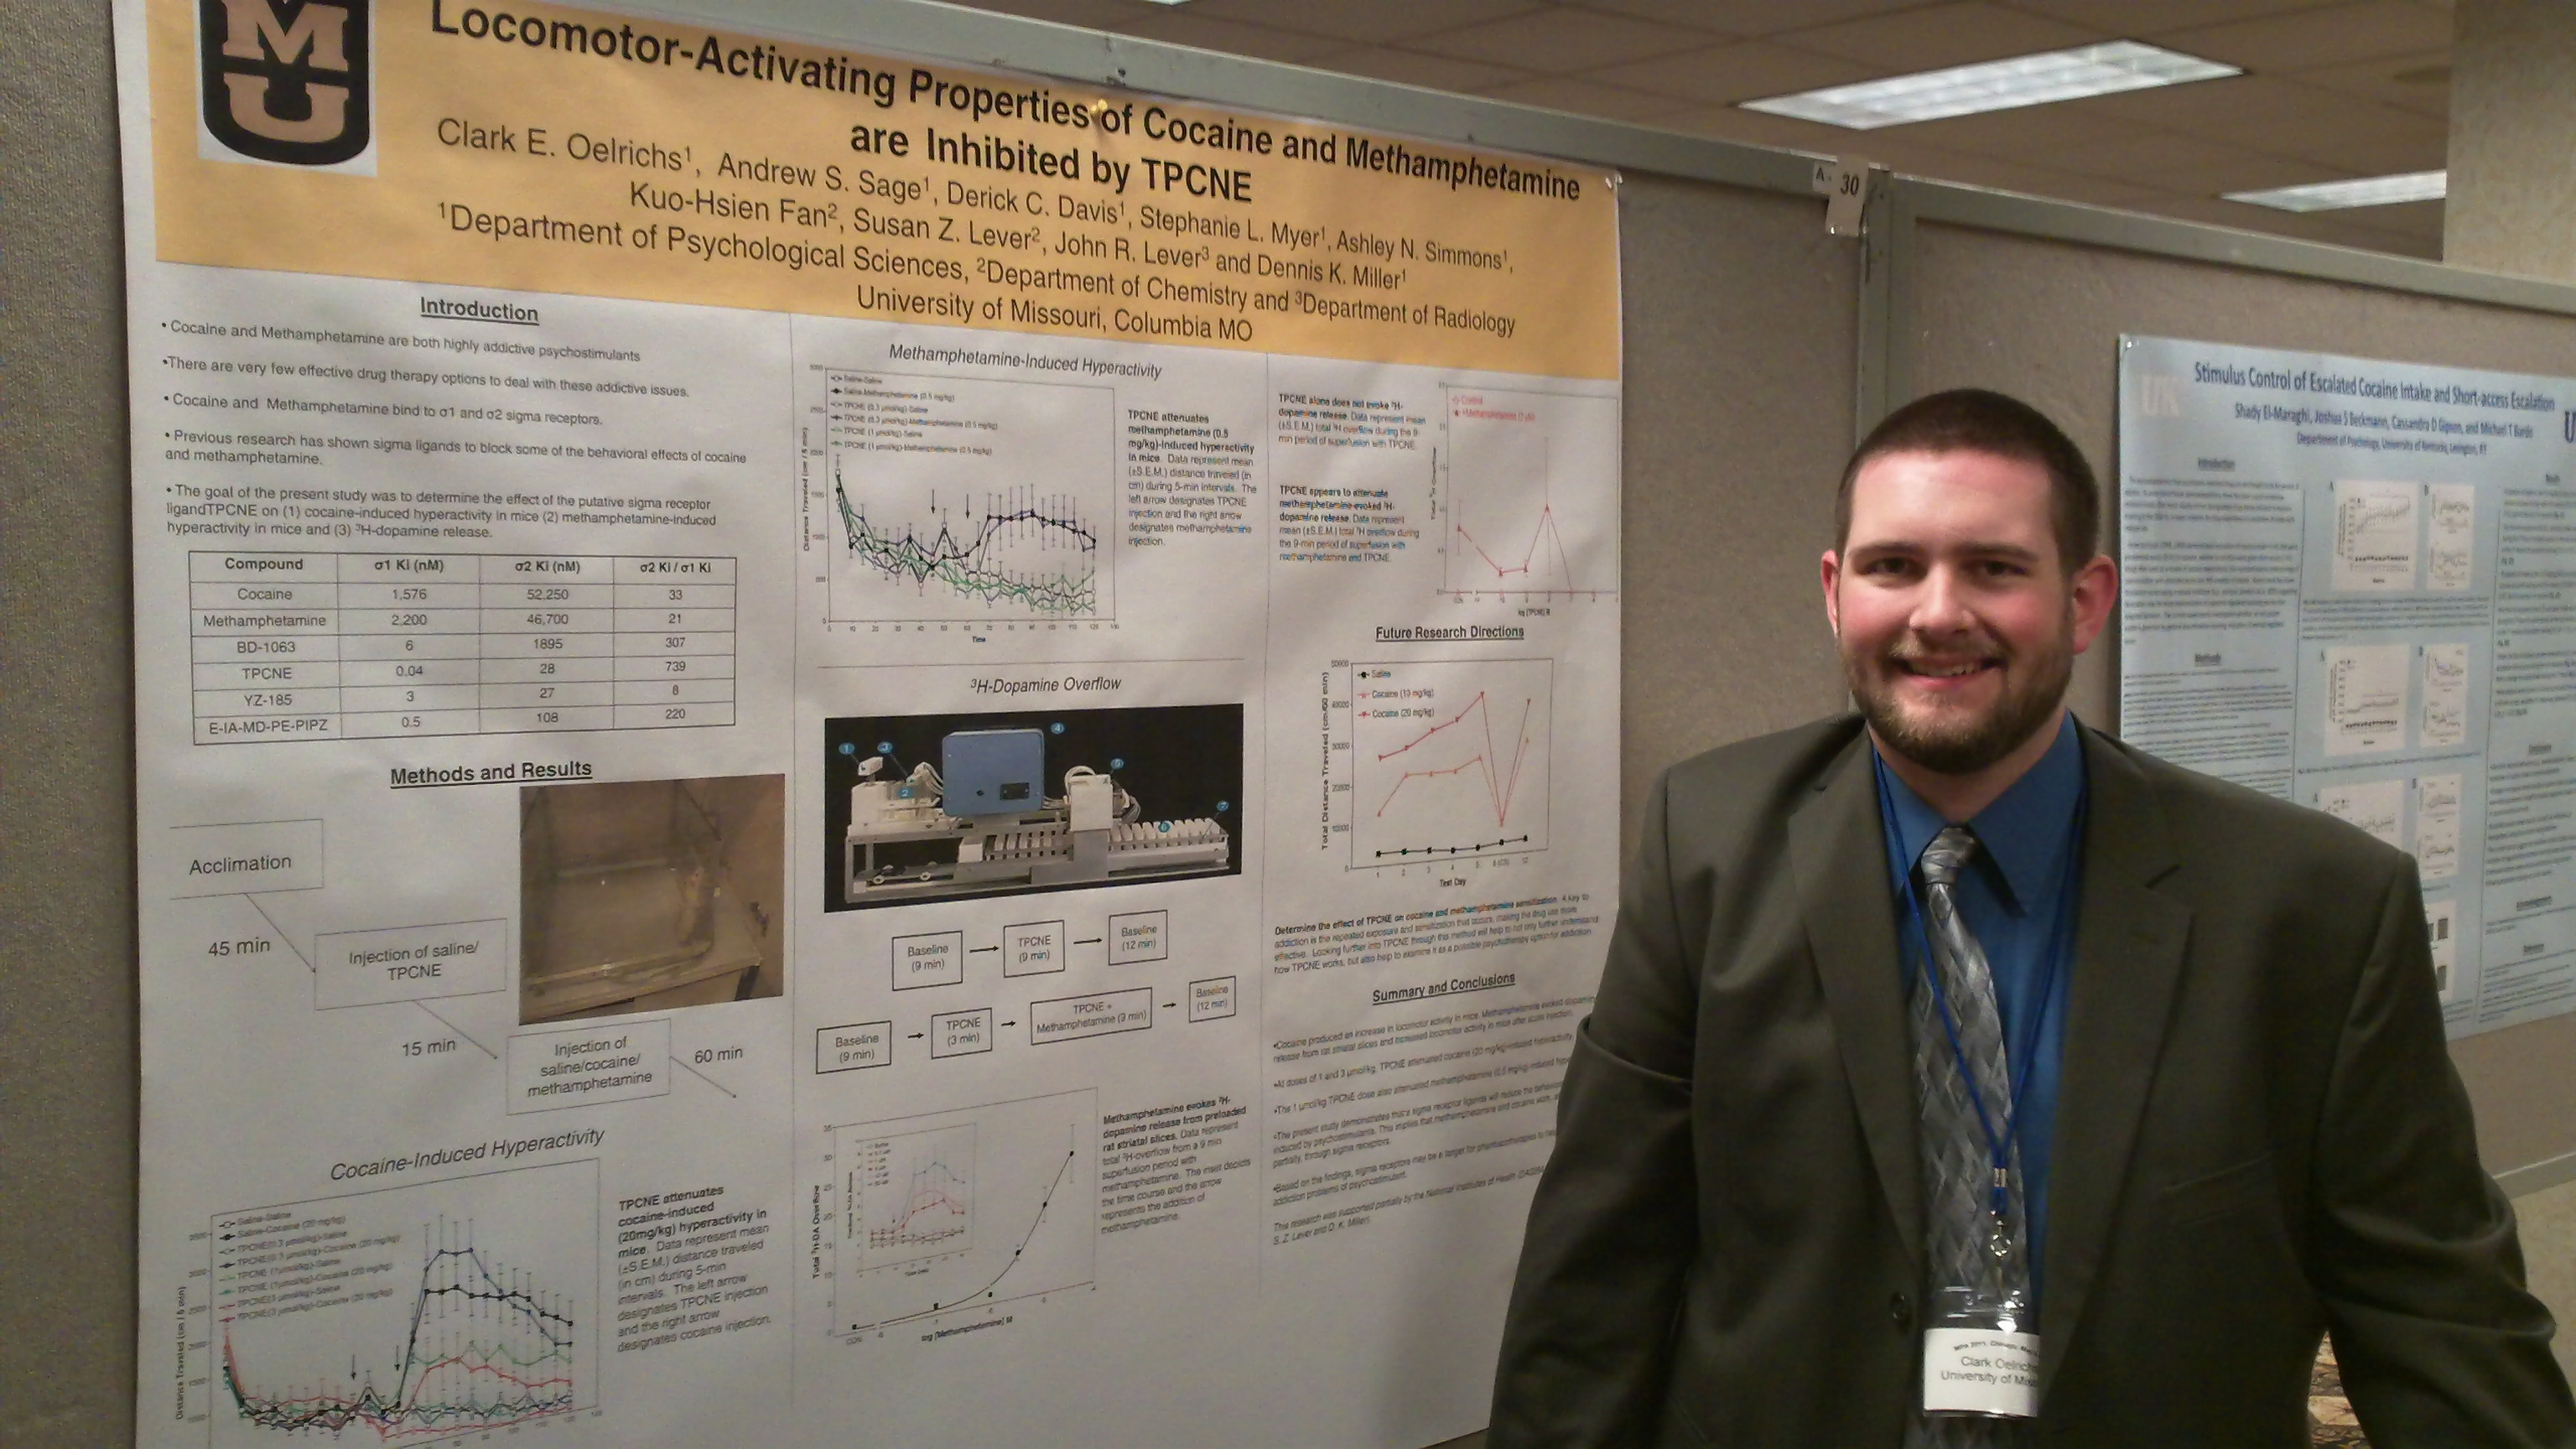 Clark Oelrichs Research